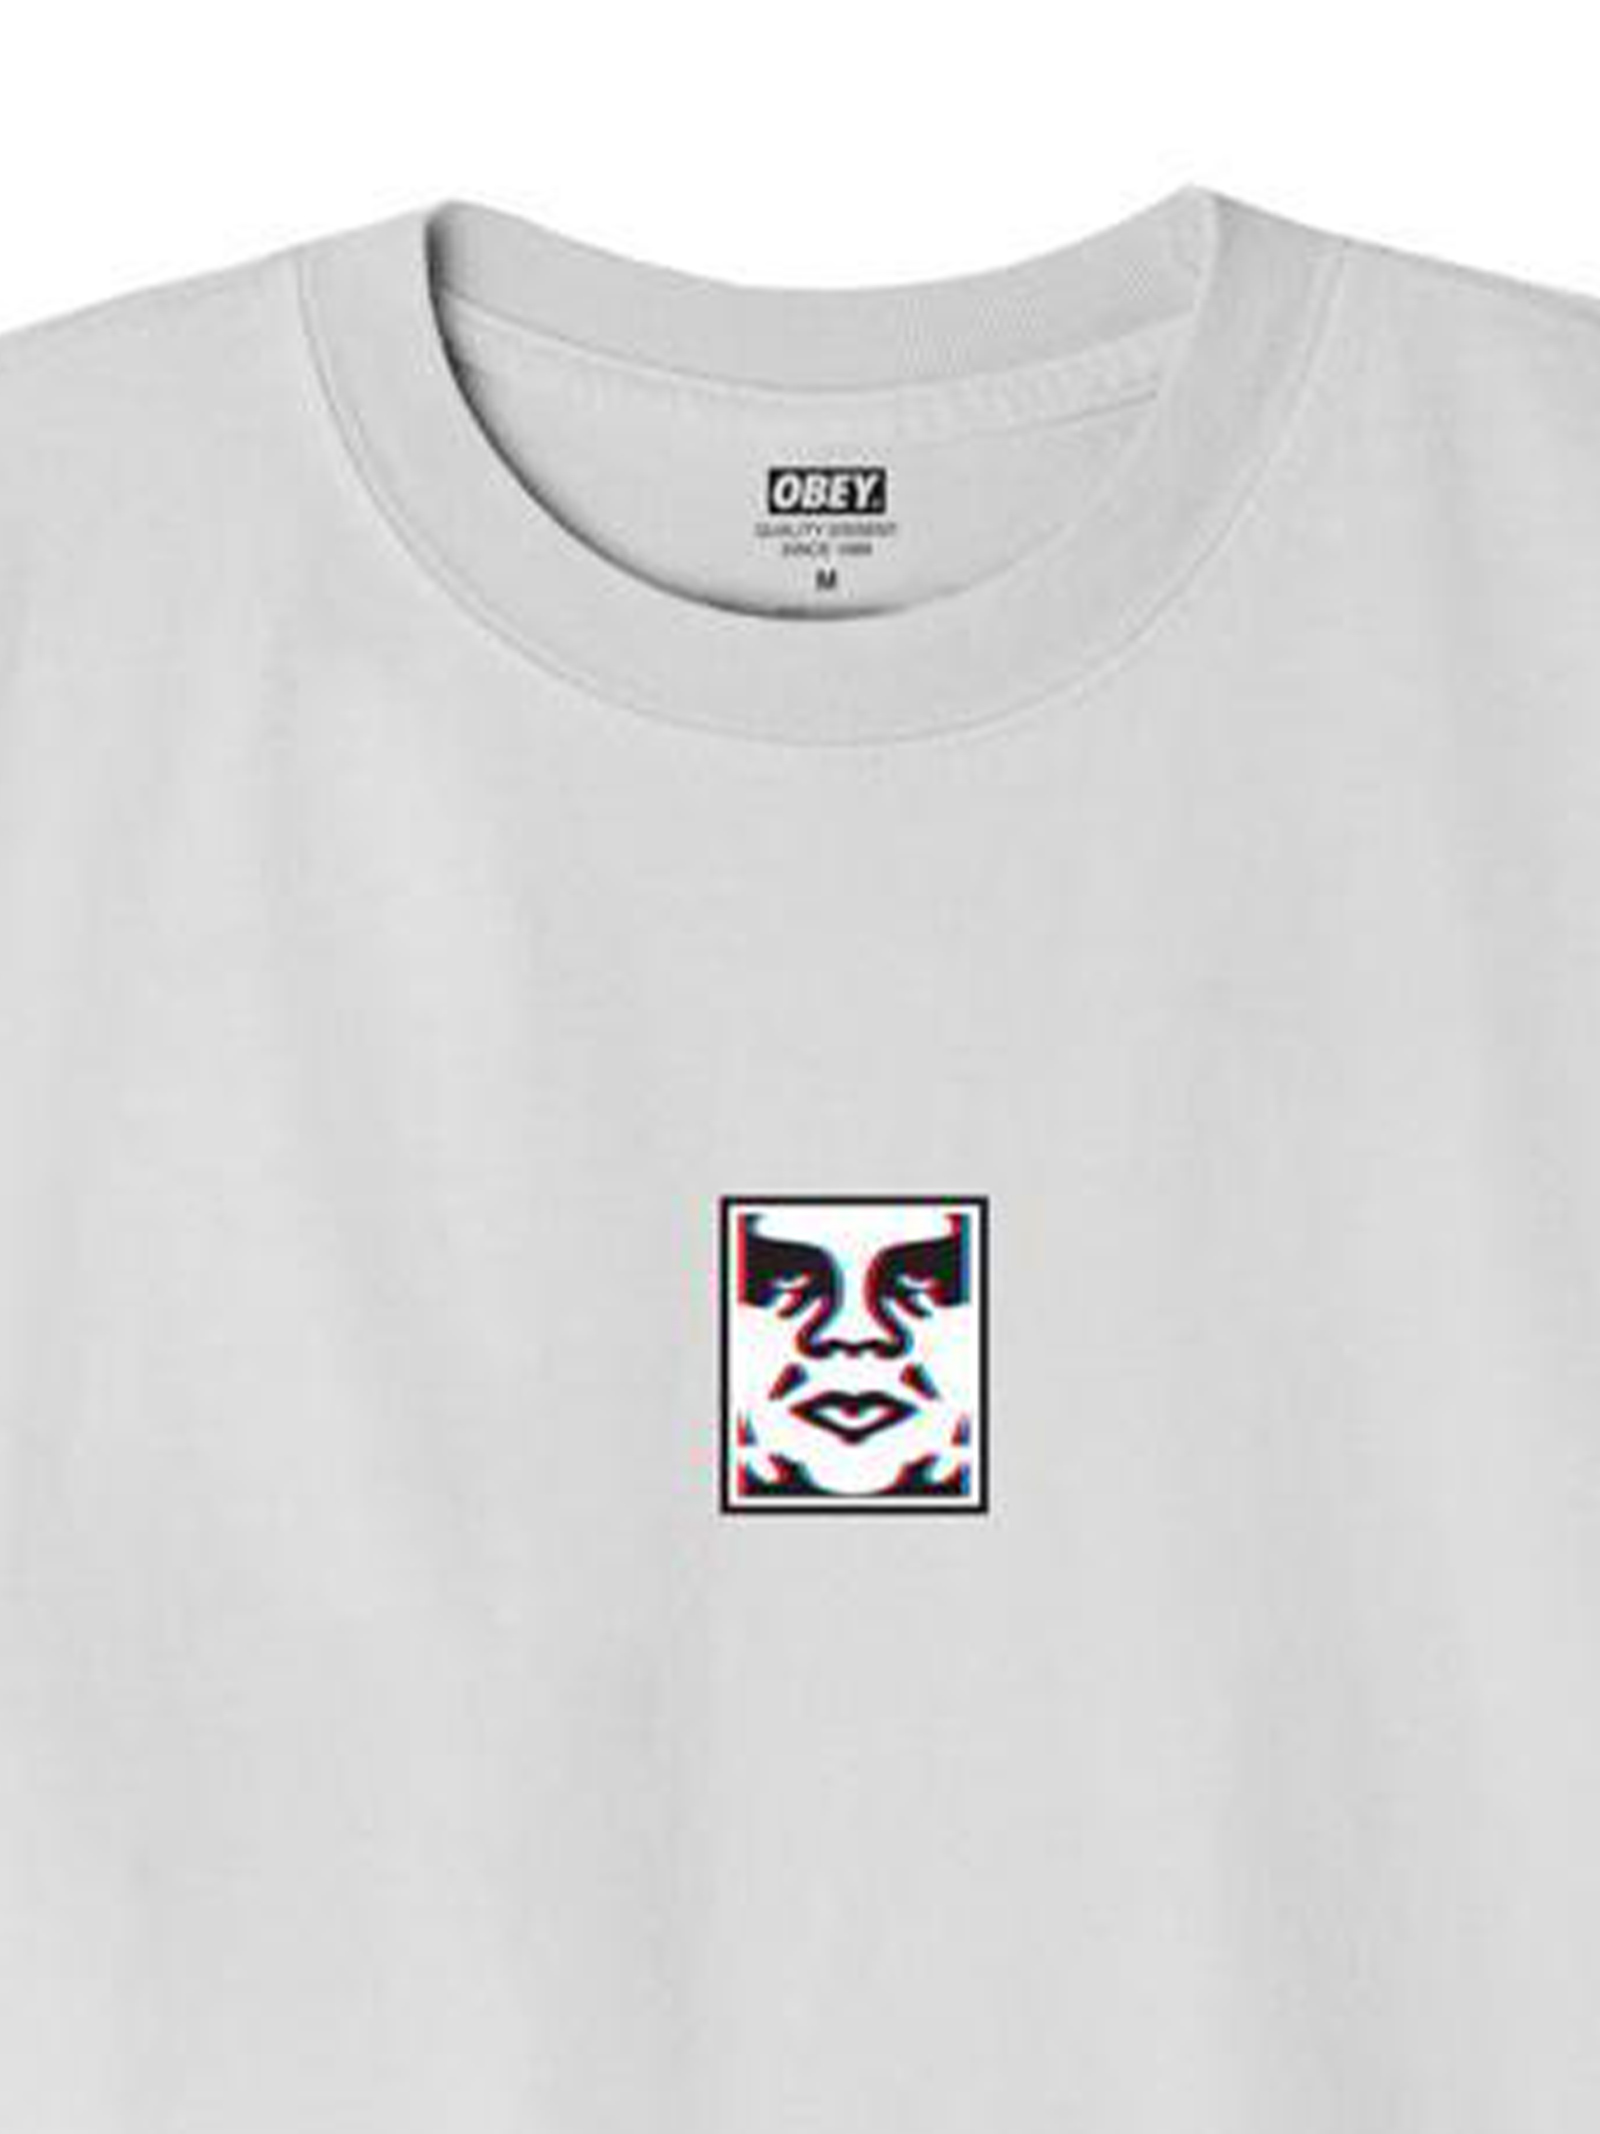 OBEY DOUBLE VISION CLASSIC T-SHIRT UOMO oBEY   T-SHIRT   22121MC000217WHITE